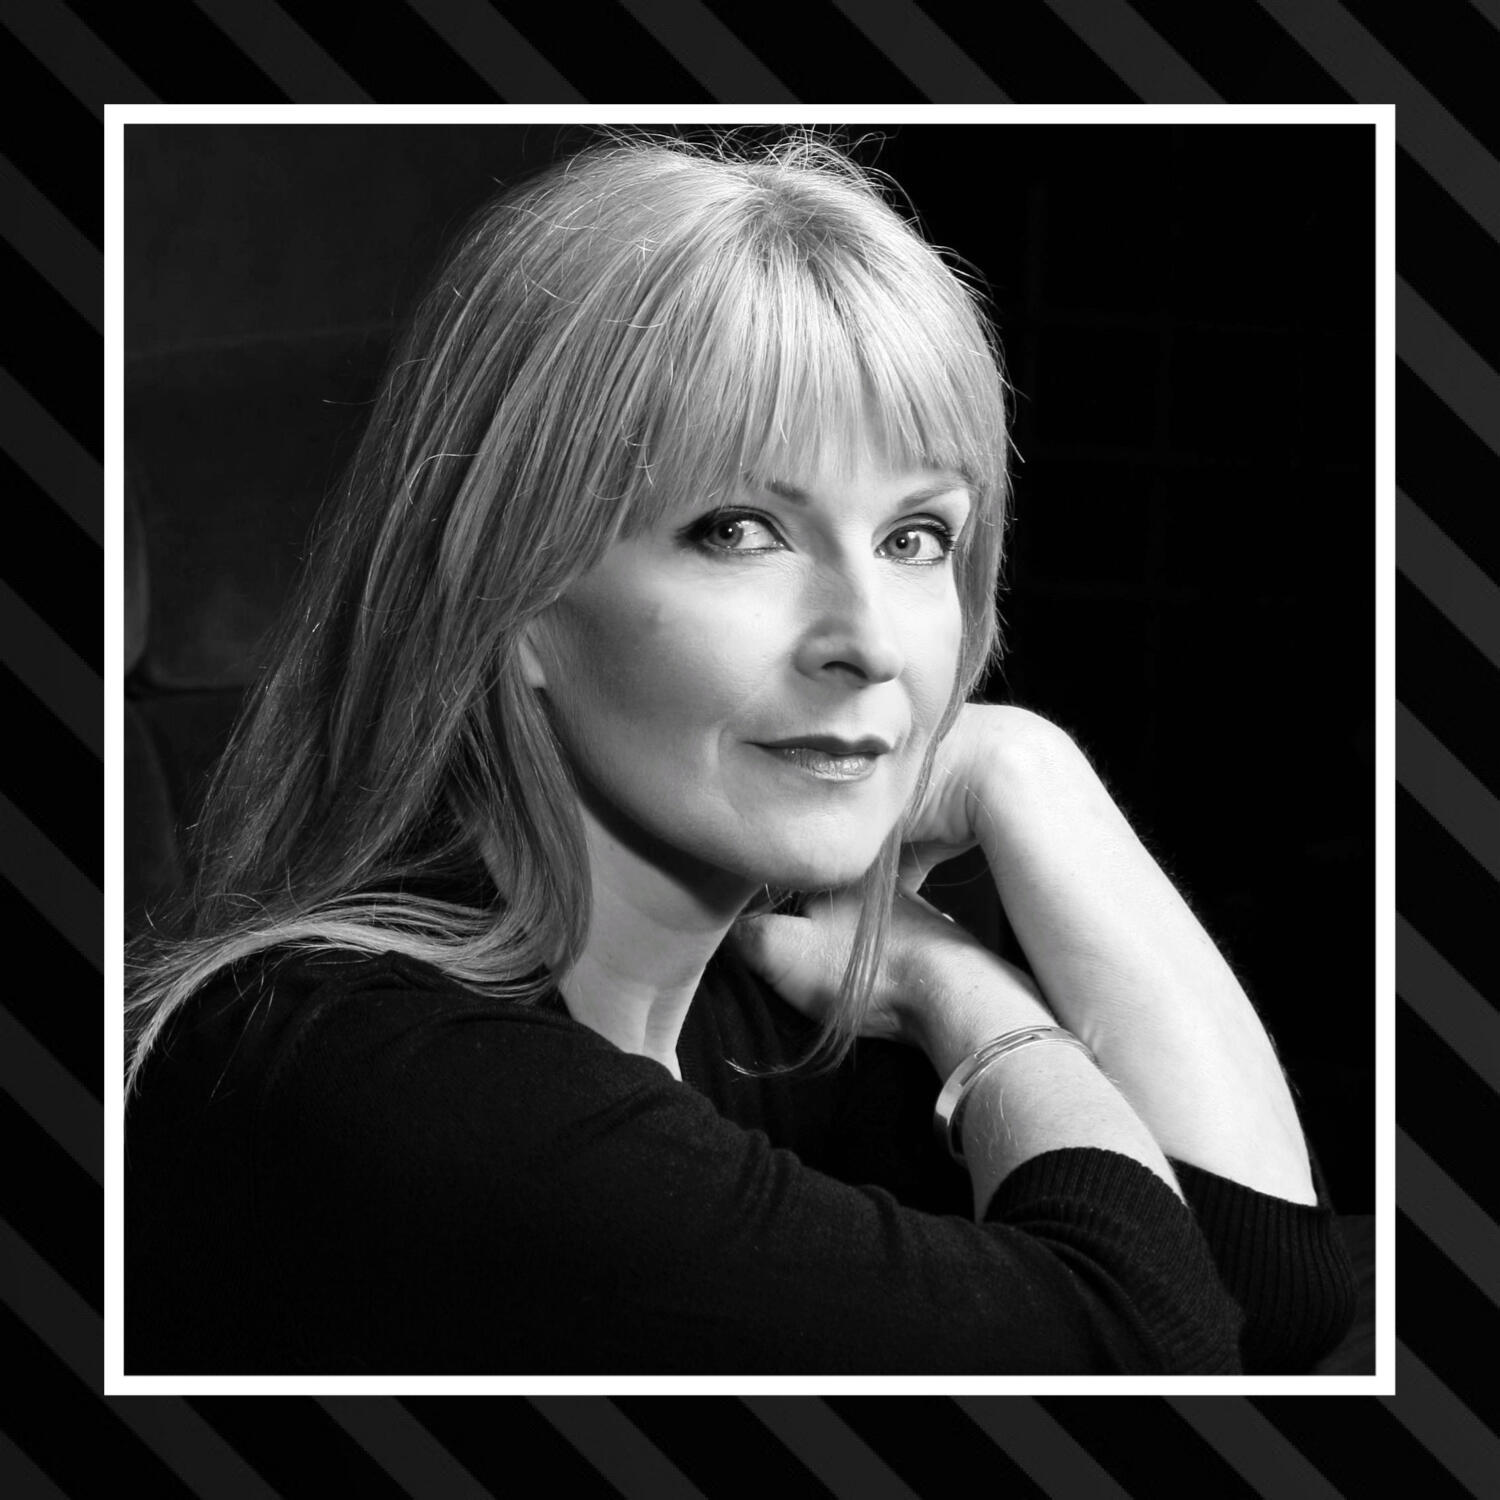 60: The one with Toyah Willcox